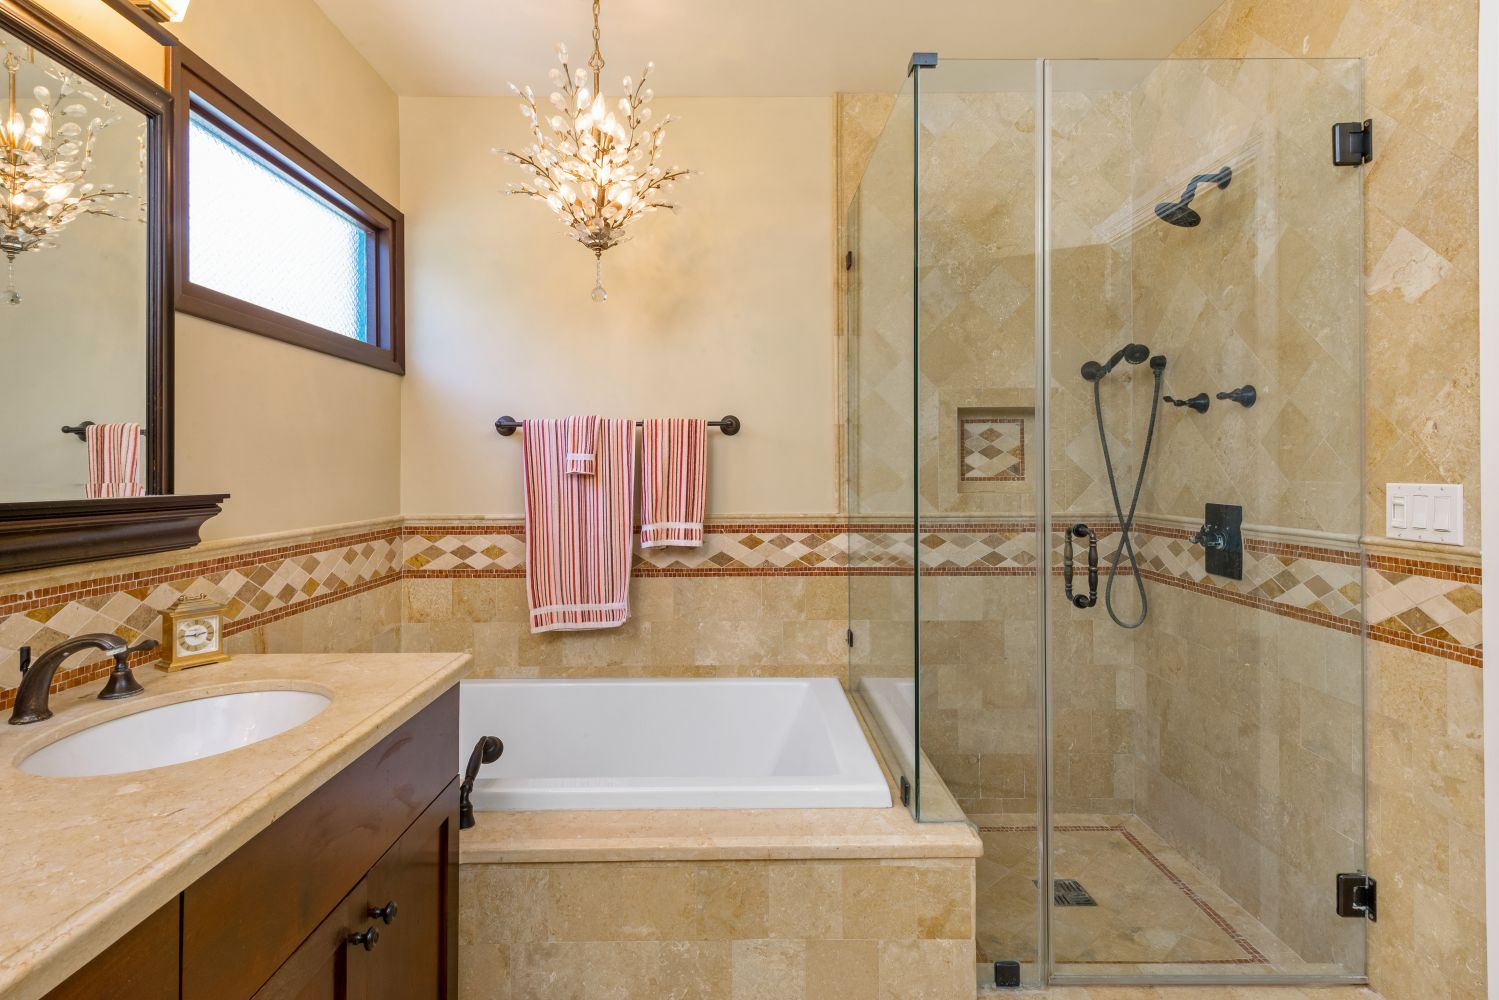 Decorative tile for built in tub and shower.